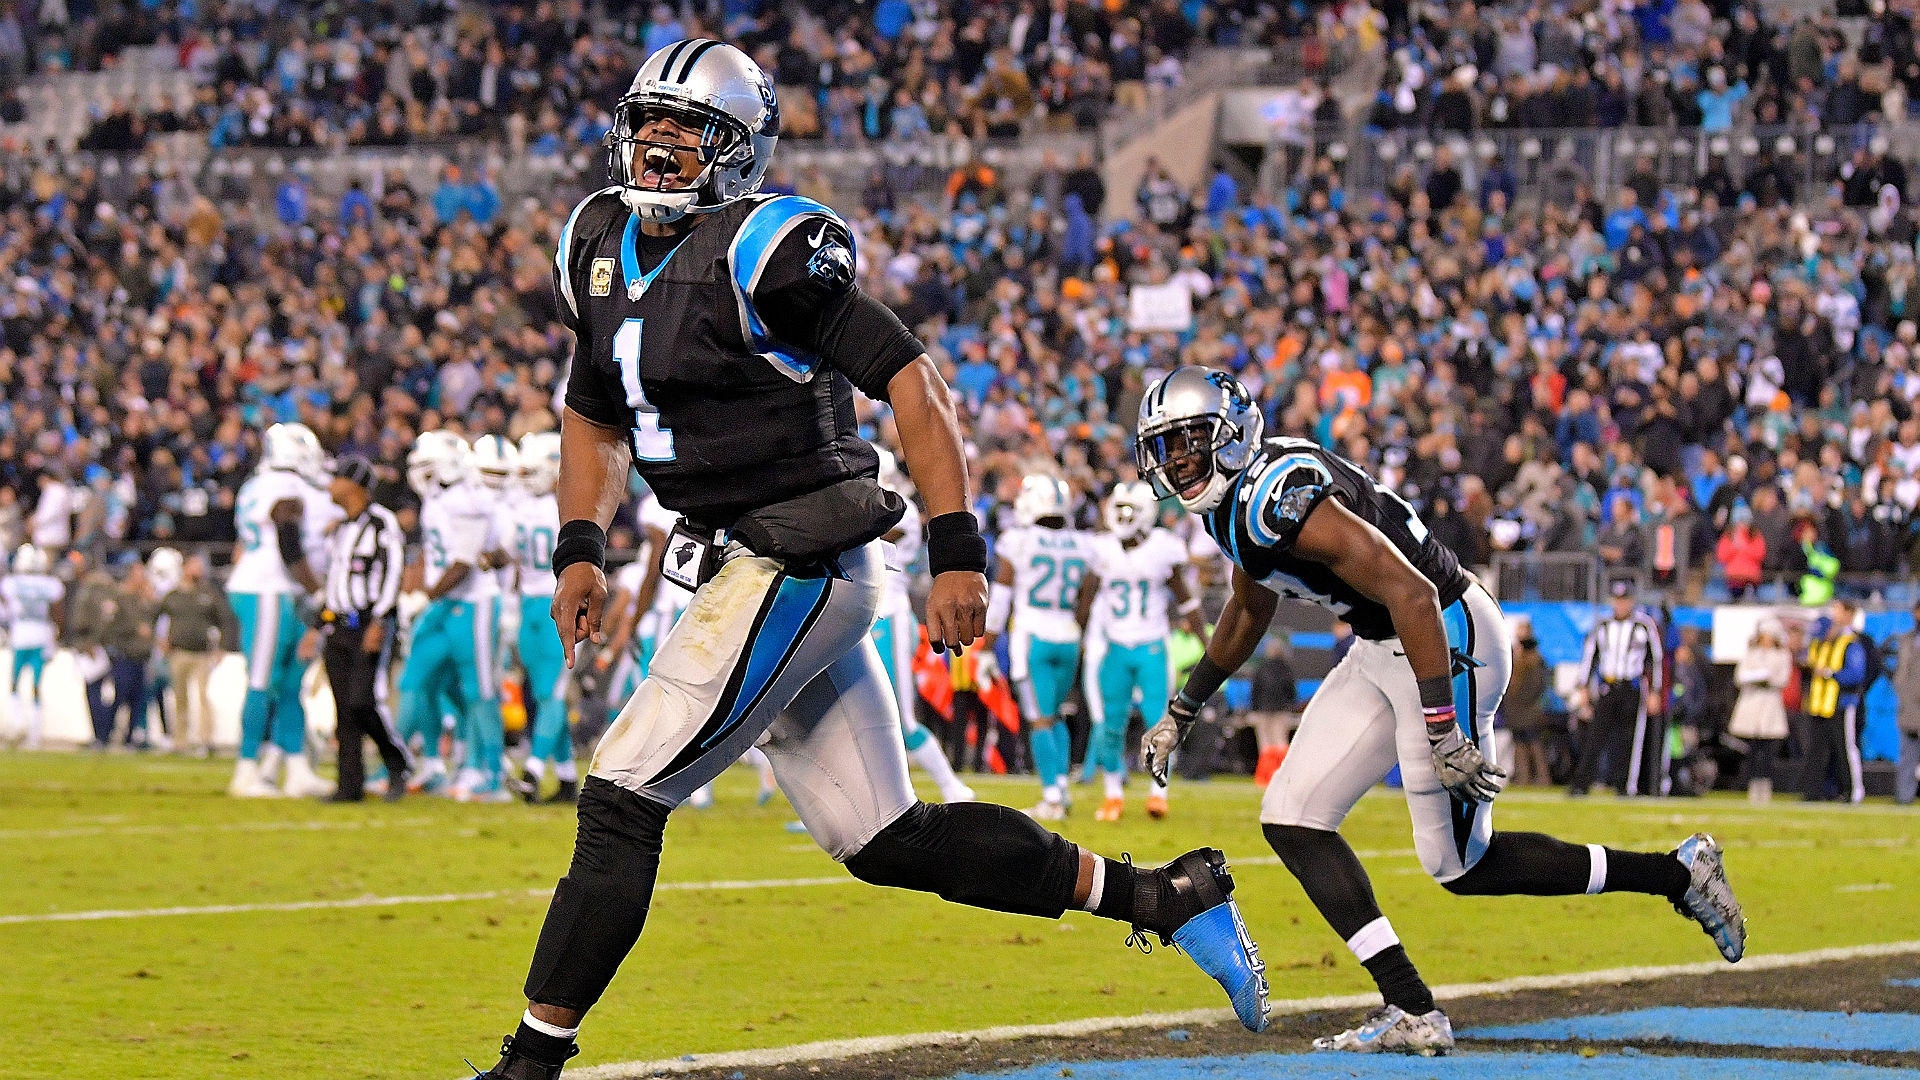 Jets lose to Panthers, 35-27